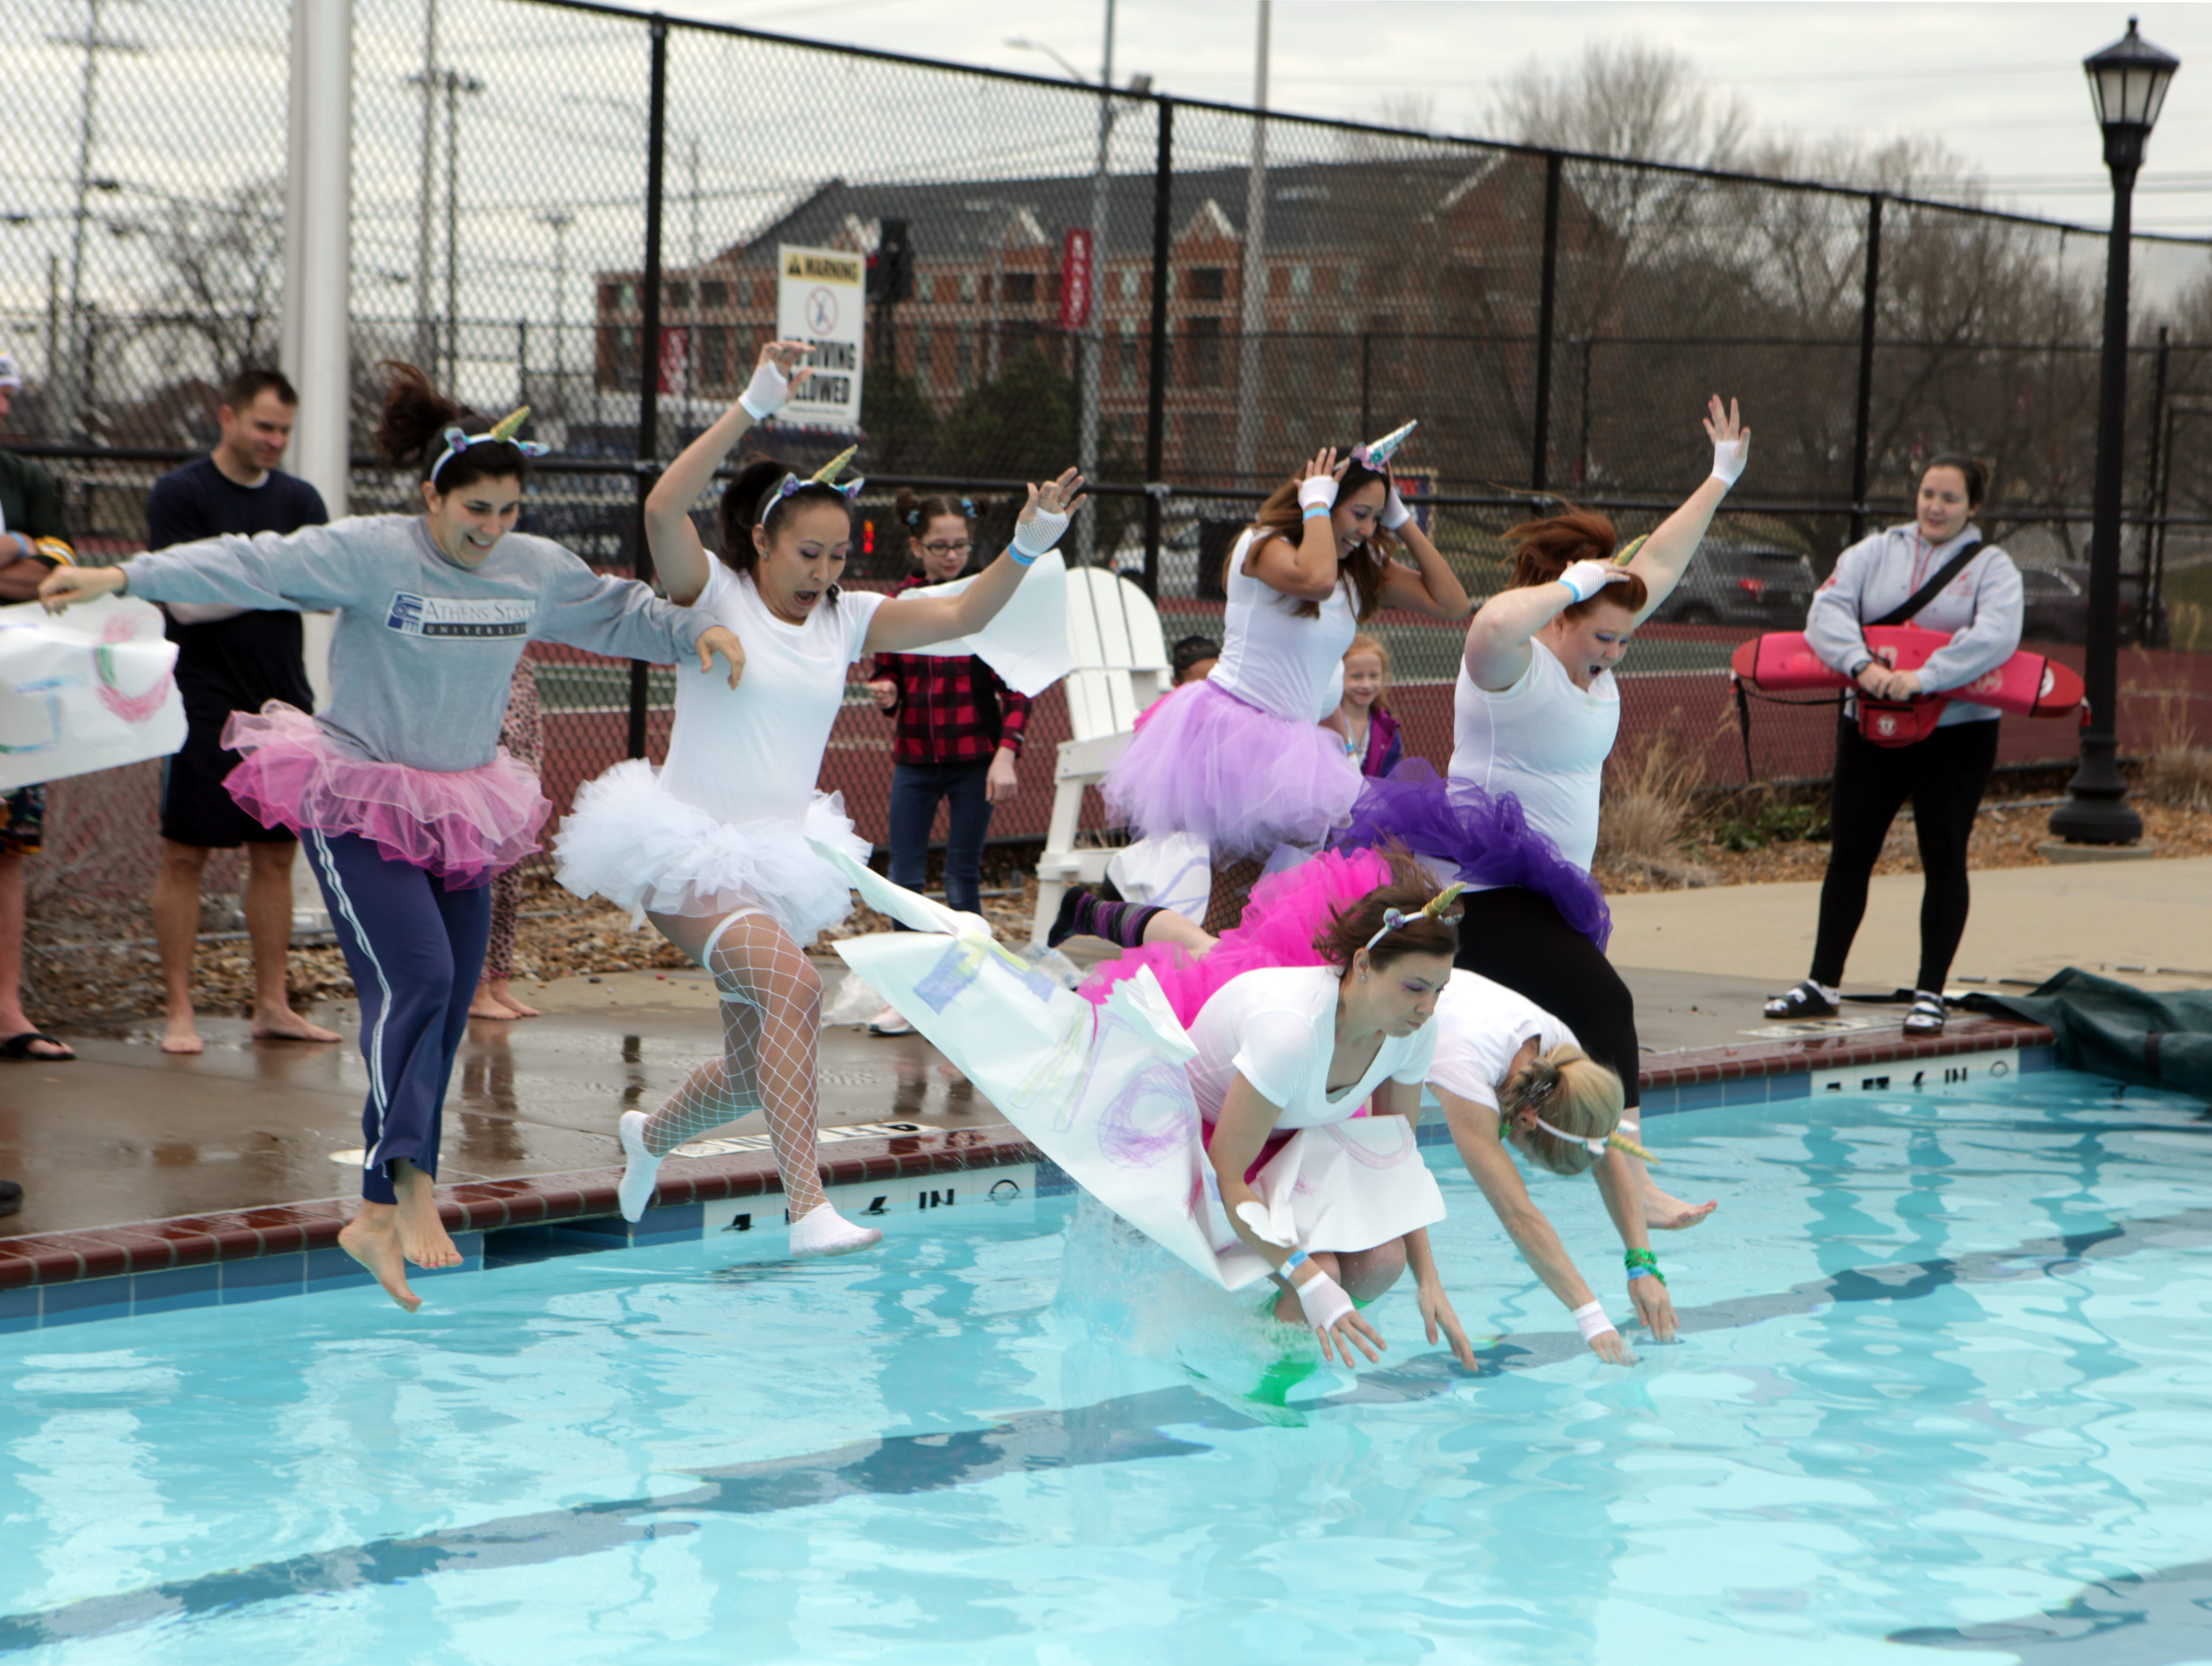 Frozen Unicorns were fearless during the Special Olympics Polar Plunge at APSU on Saturday, Feb. 1, 2019. More than $10,000 was raised at this year's event.